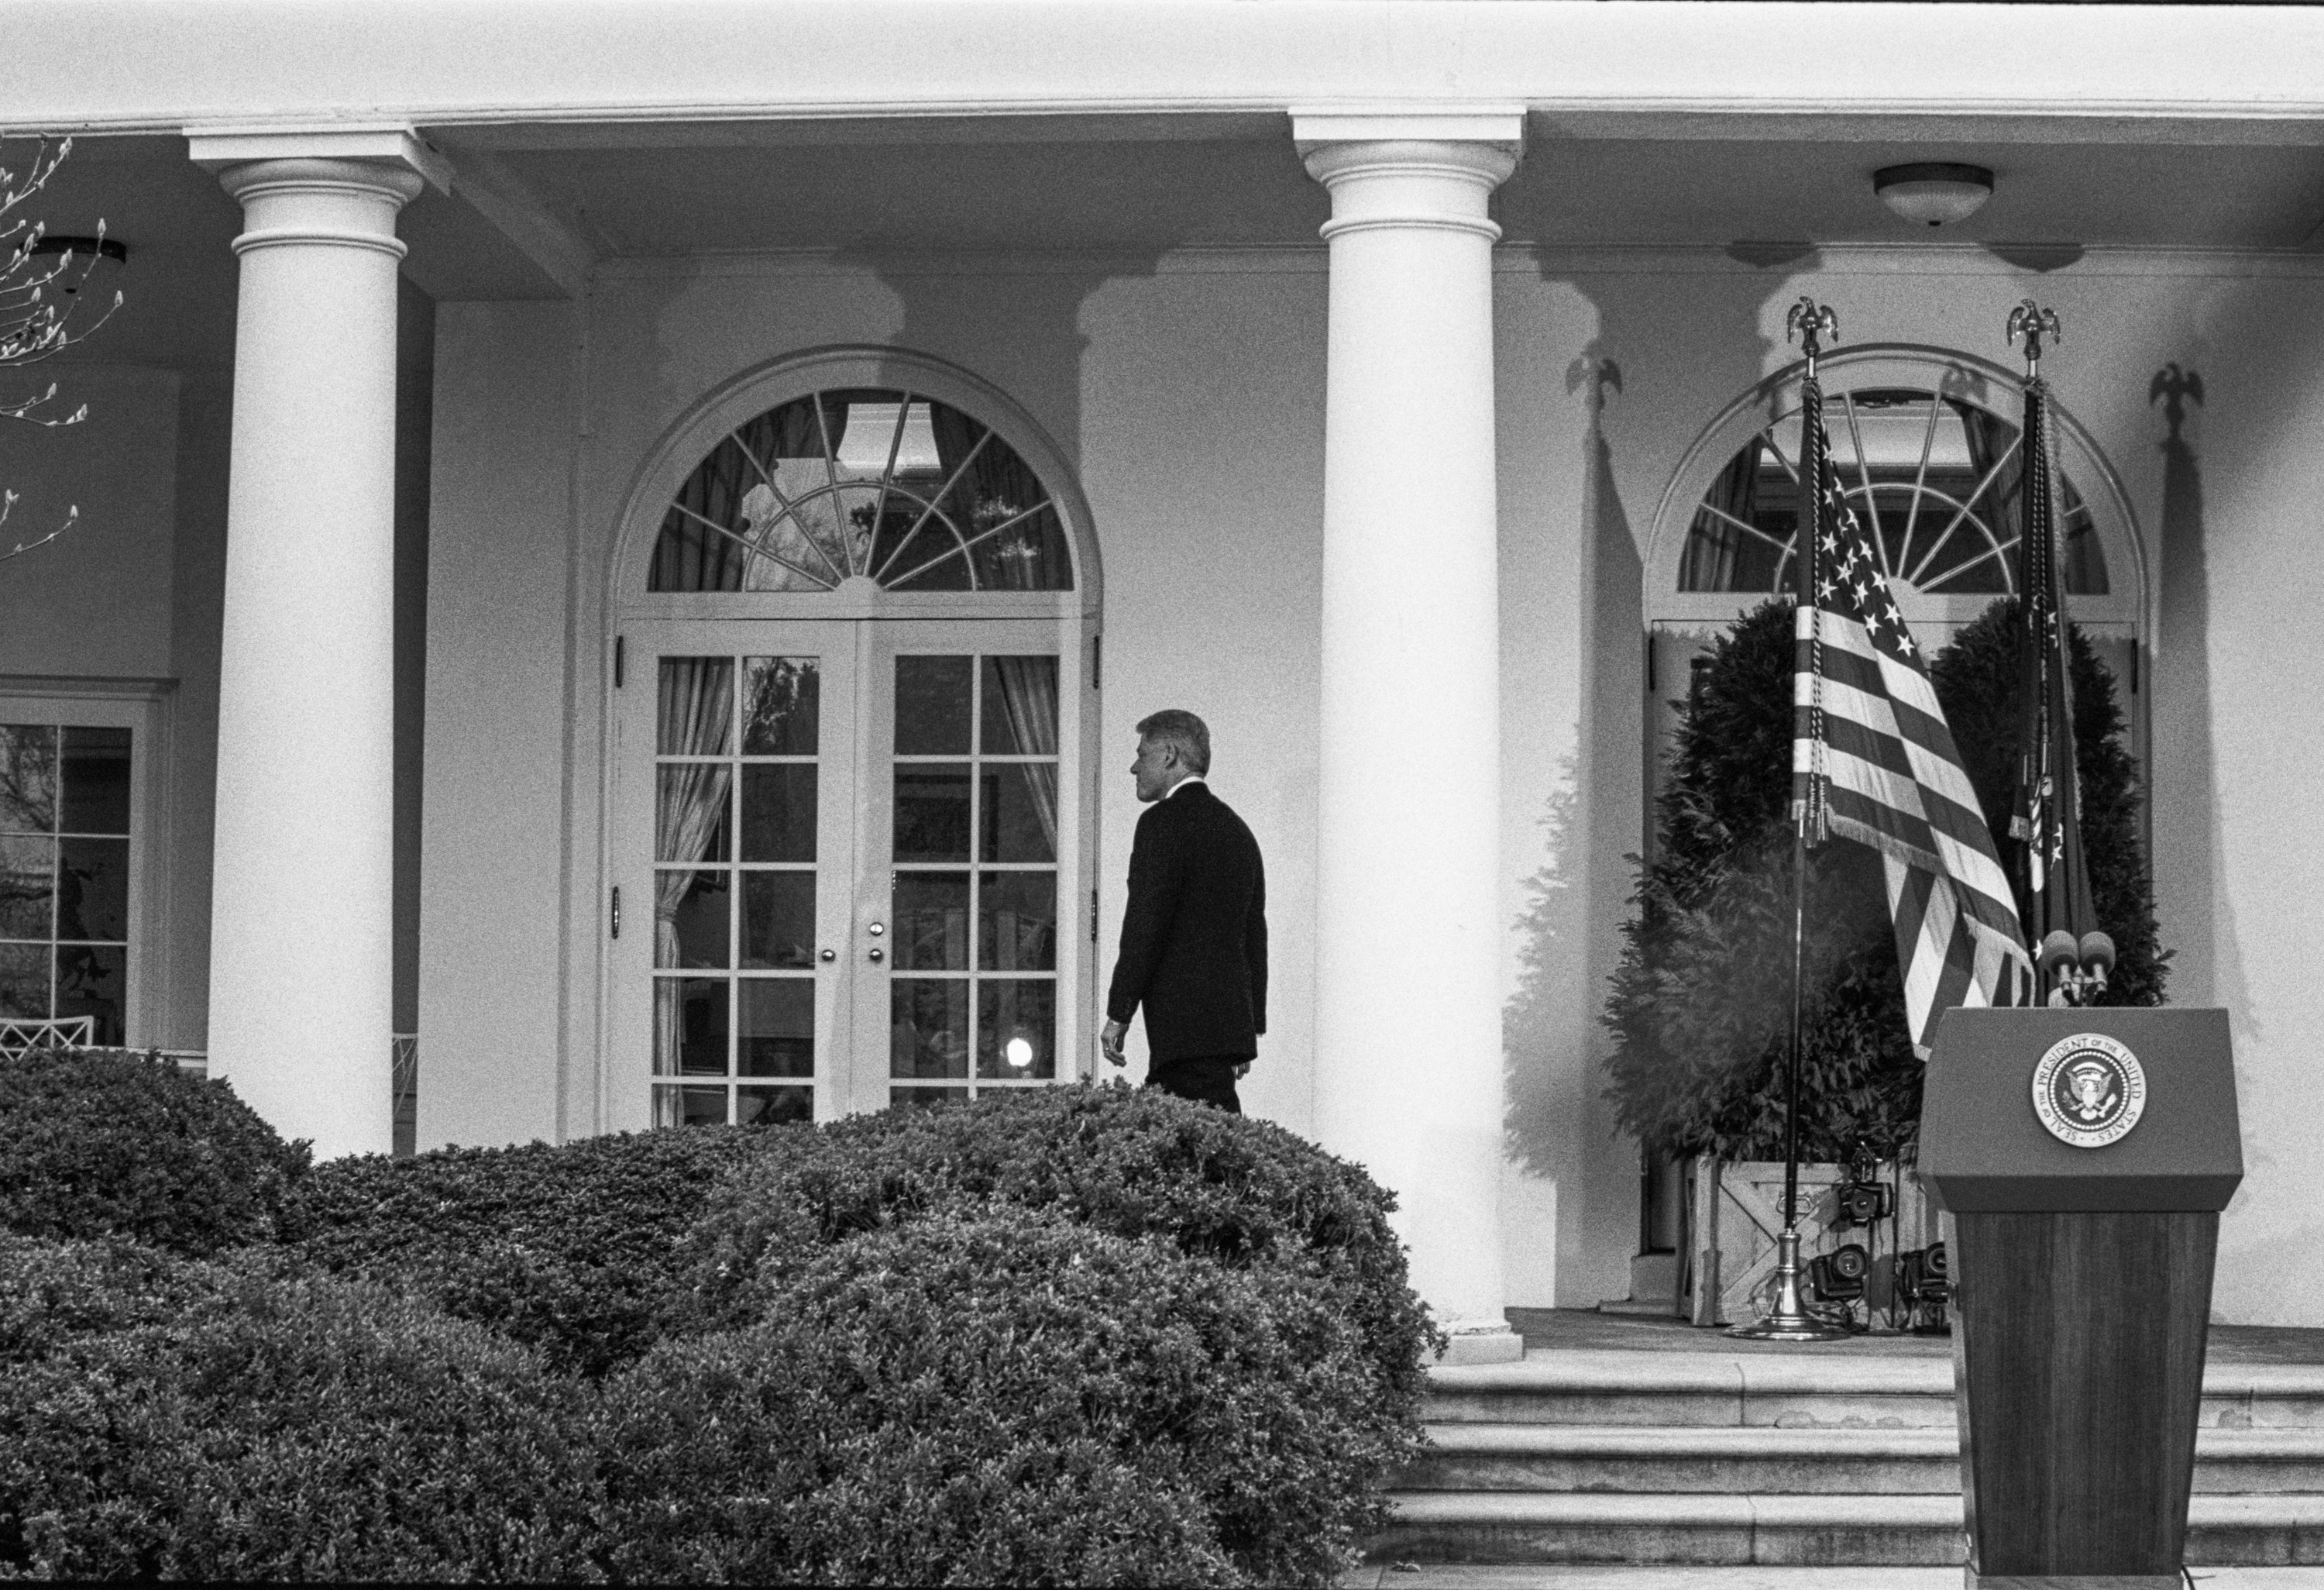 Then-U.S. President Bill Clinton returns to the Oval Office after learning that the U.S. Senate voted to acquit him of the charges of perjury and obstruction of justice during his impeachment trial, Washington, D.C., the U.S., Feb. 12, 1999. (Photo by Getty Images)